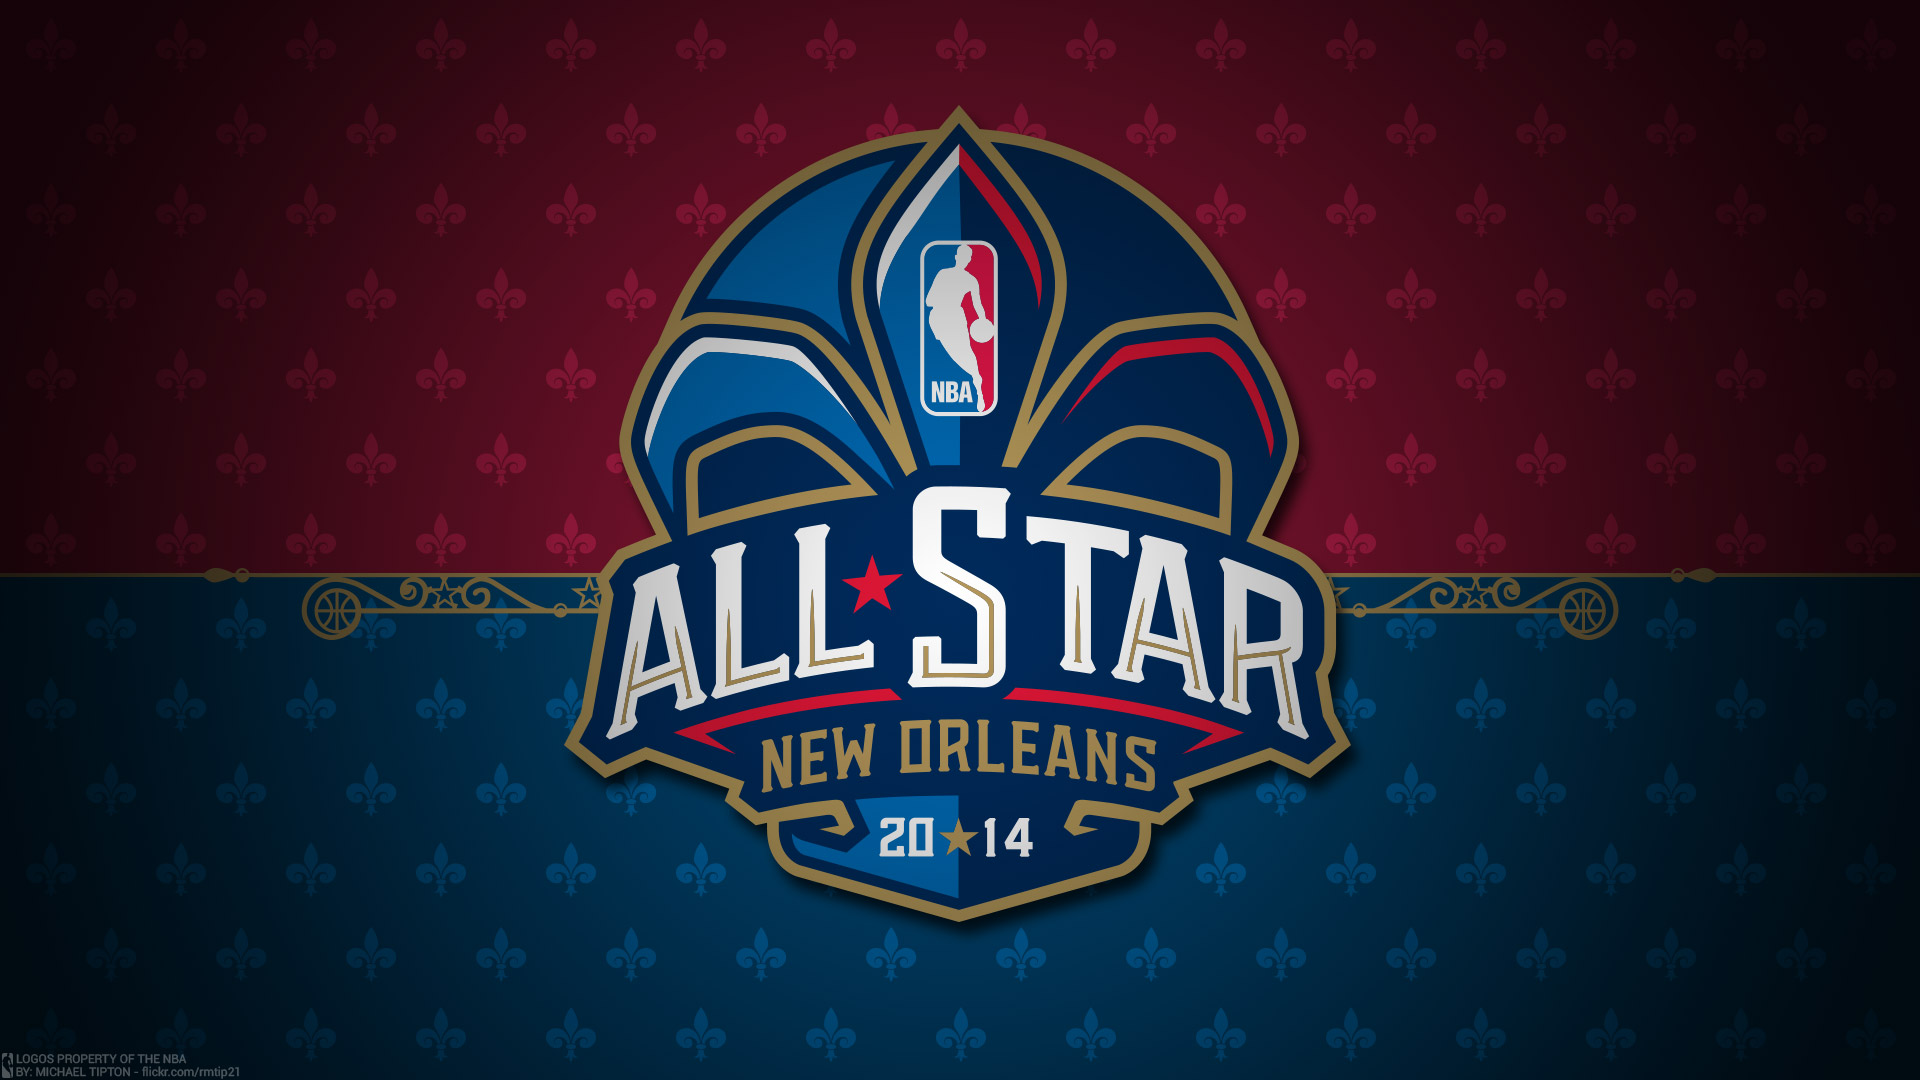 All Star NBA Wallpaper